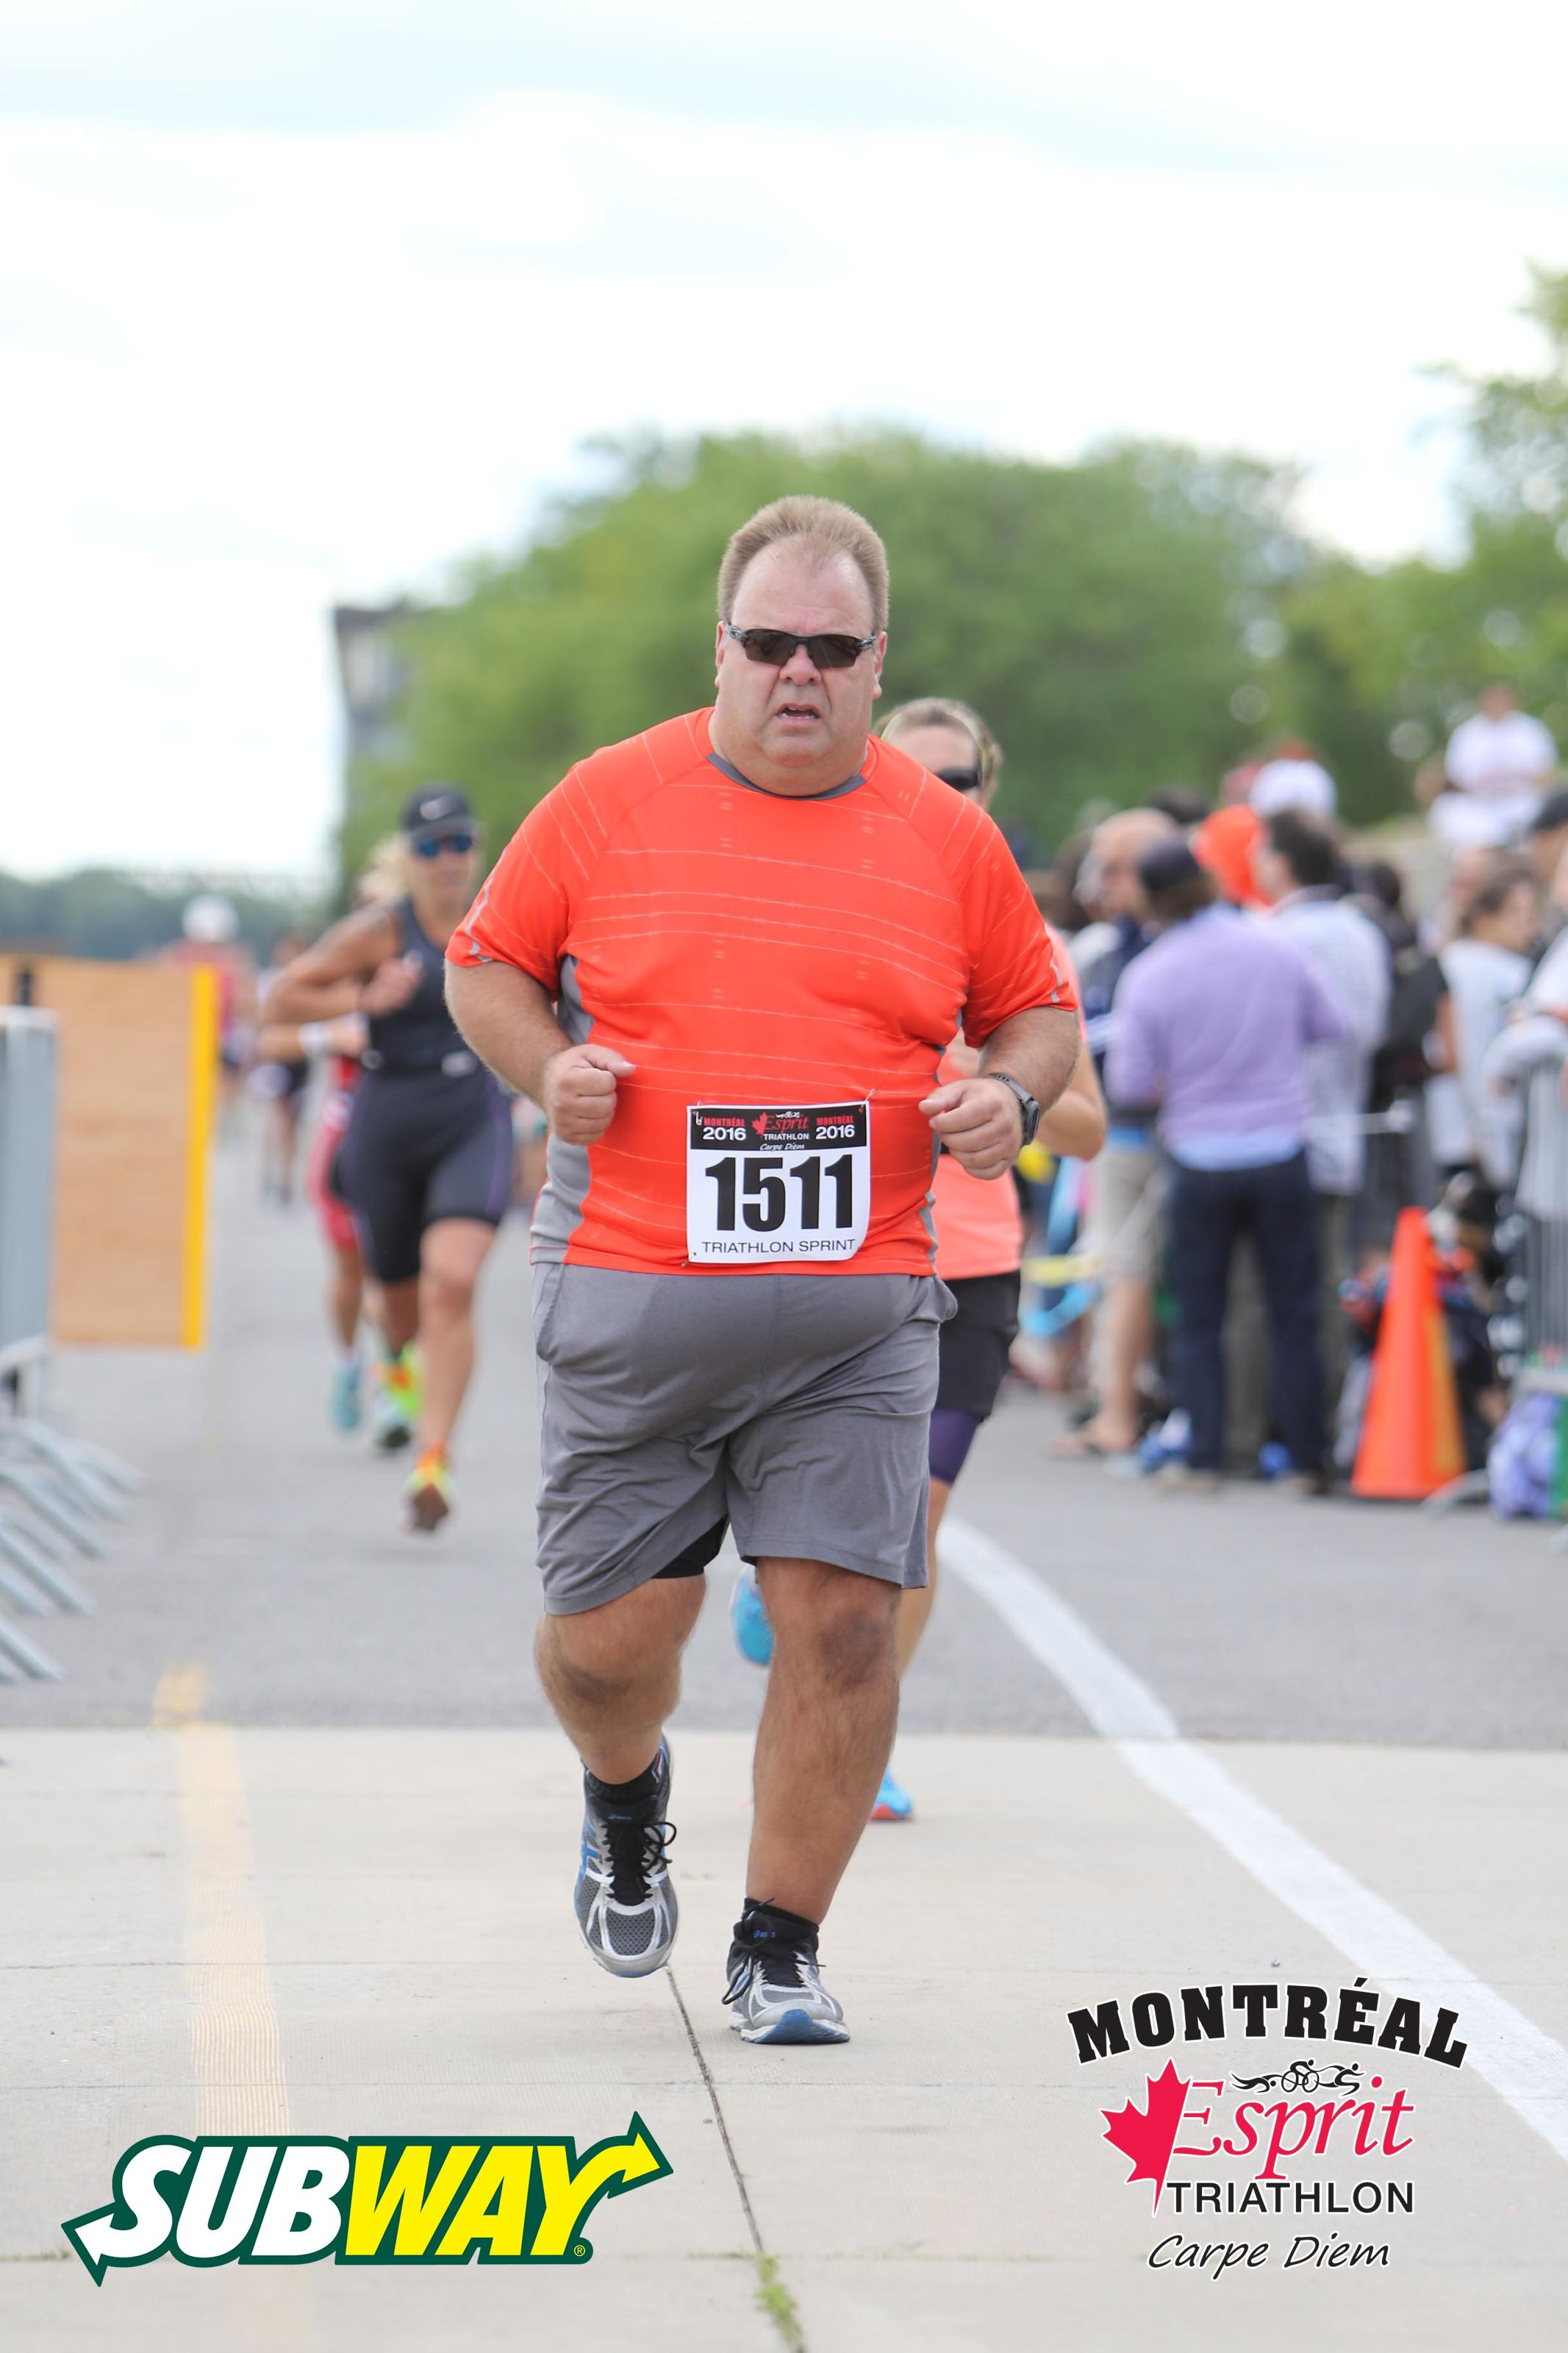 From 375 lb to Triathlete!